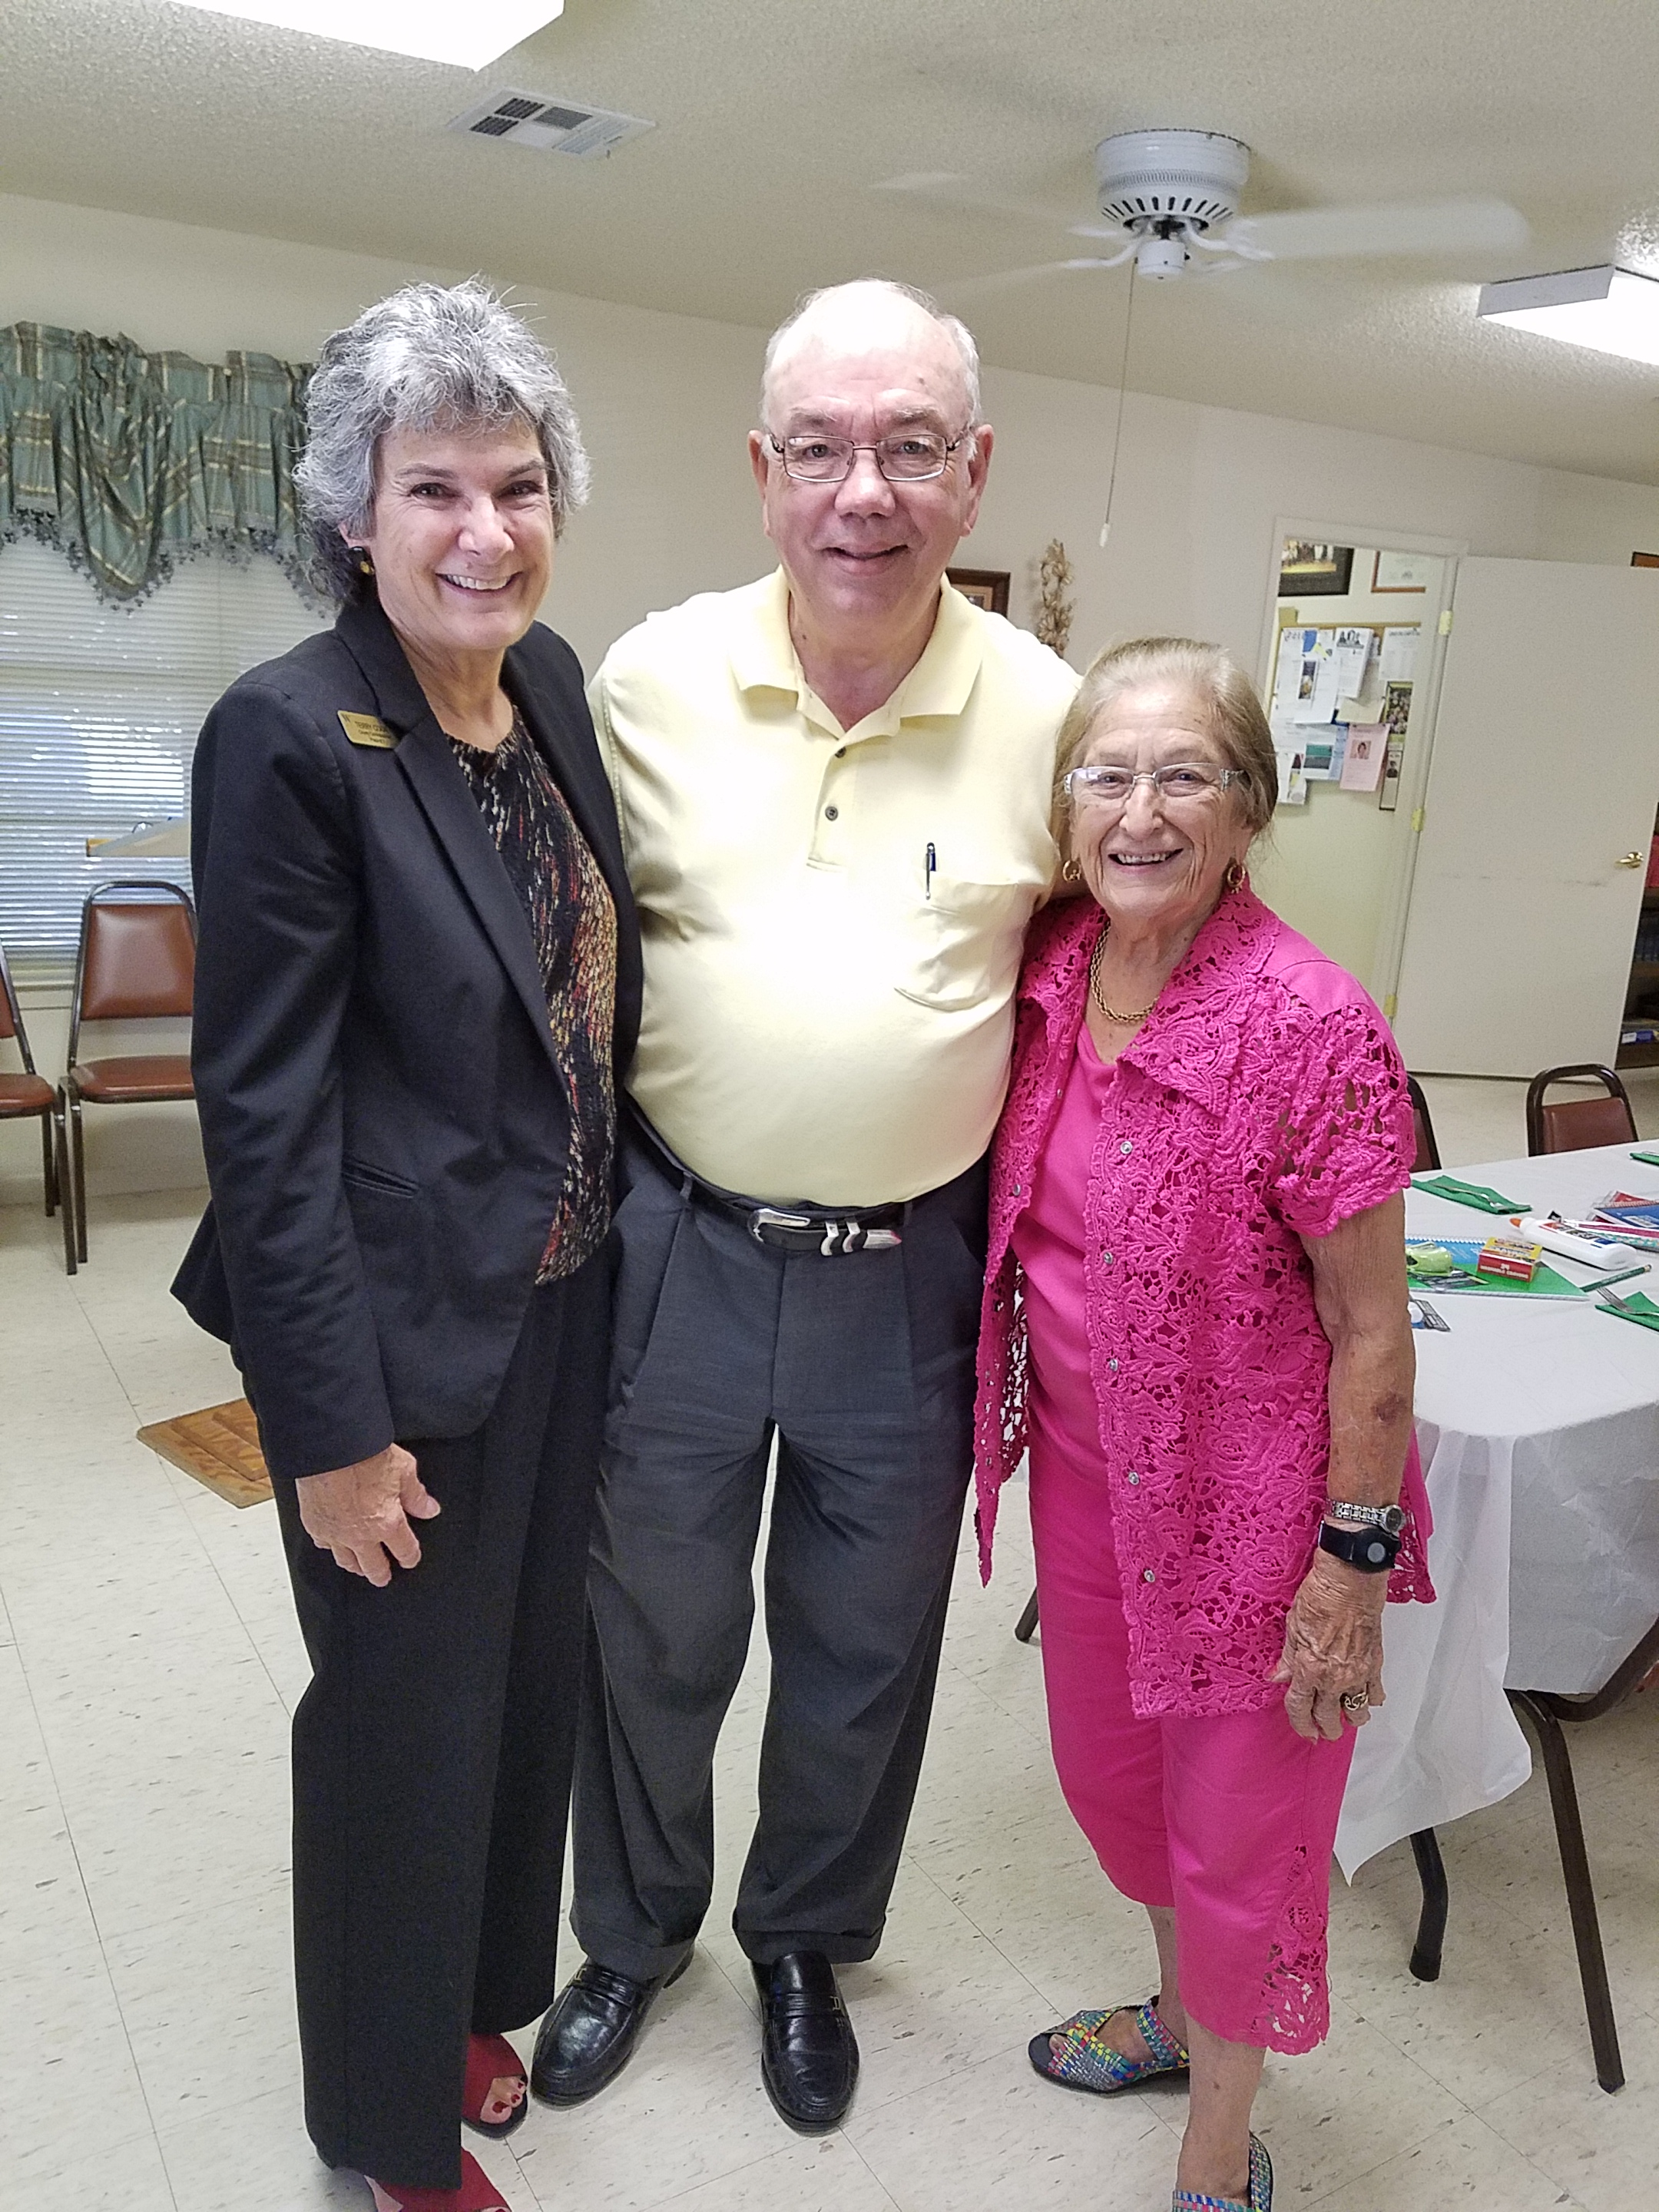 Commissioner Cook is pictured with Ed Komandasky and Grace Bulgerin Lidell.